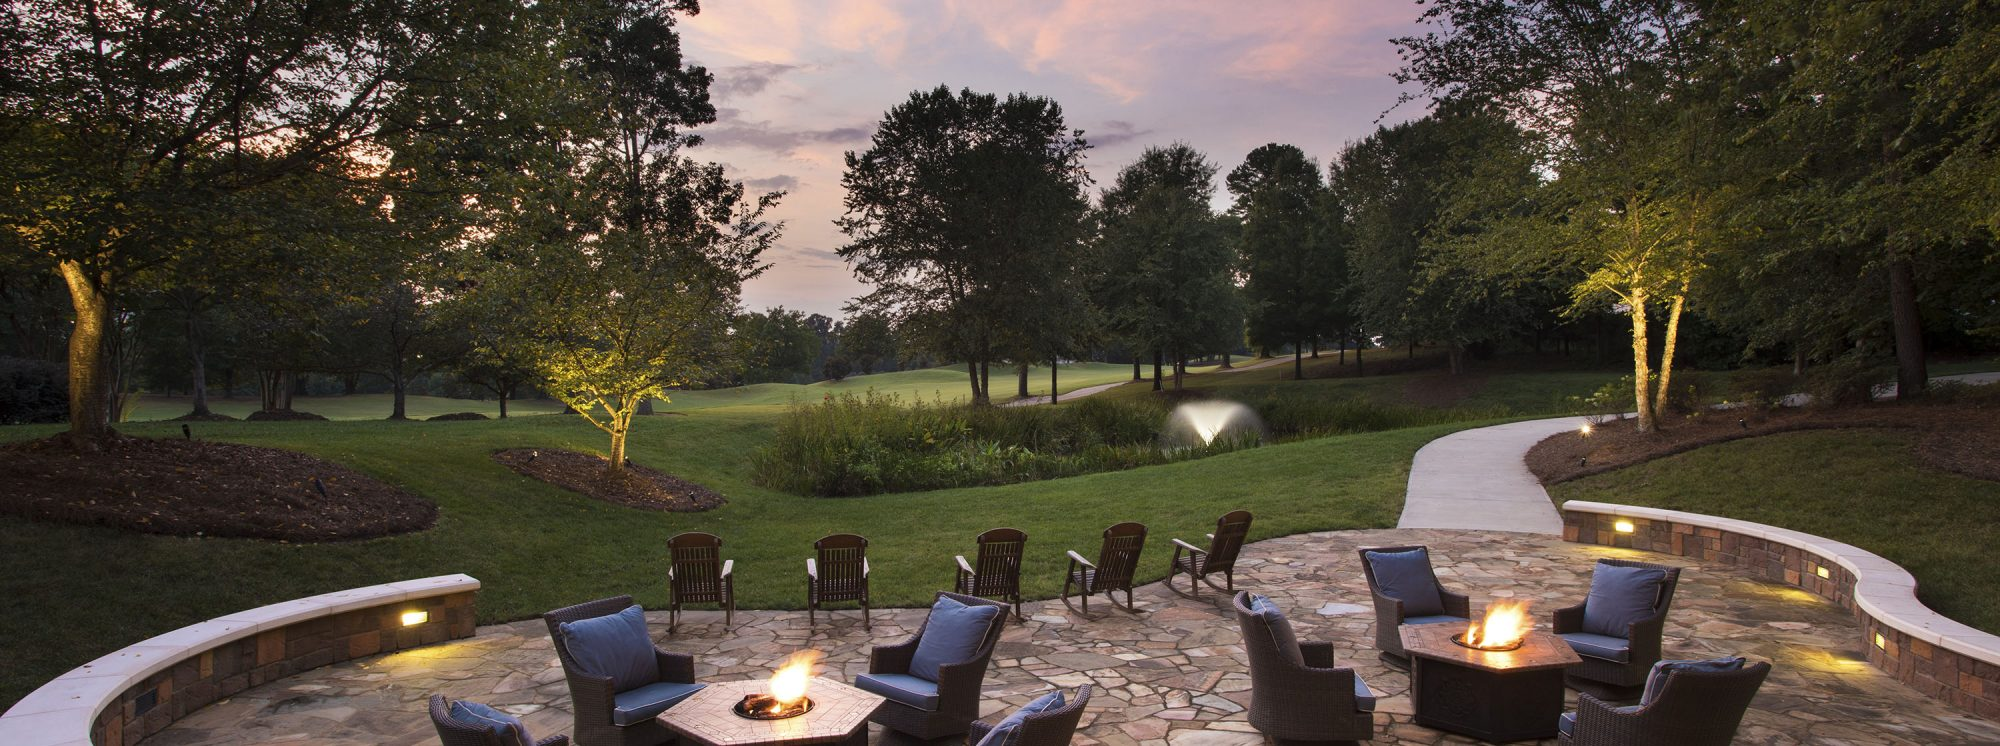 The Lodge At Ballantyne Charlotte Relaxing Stone Patio